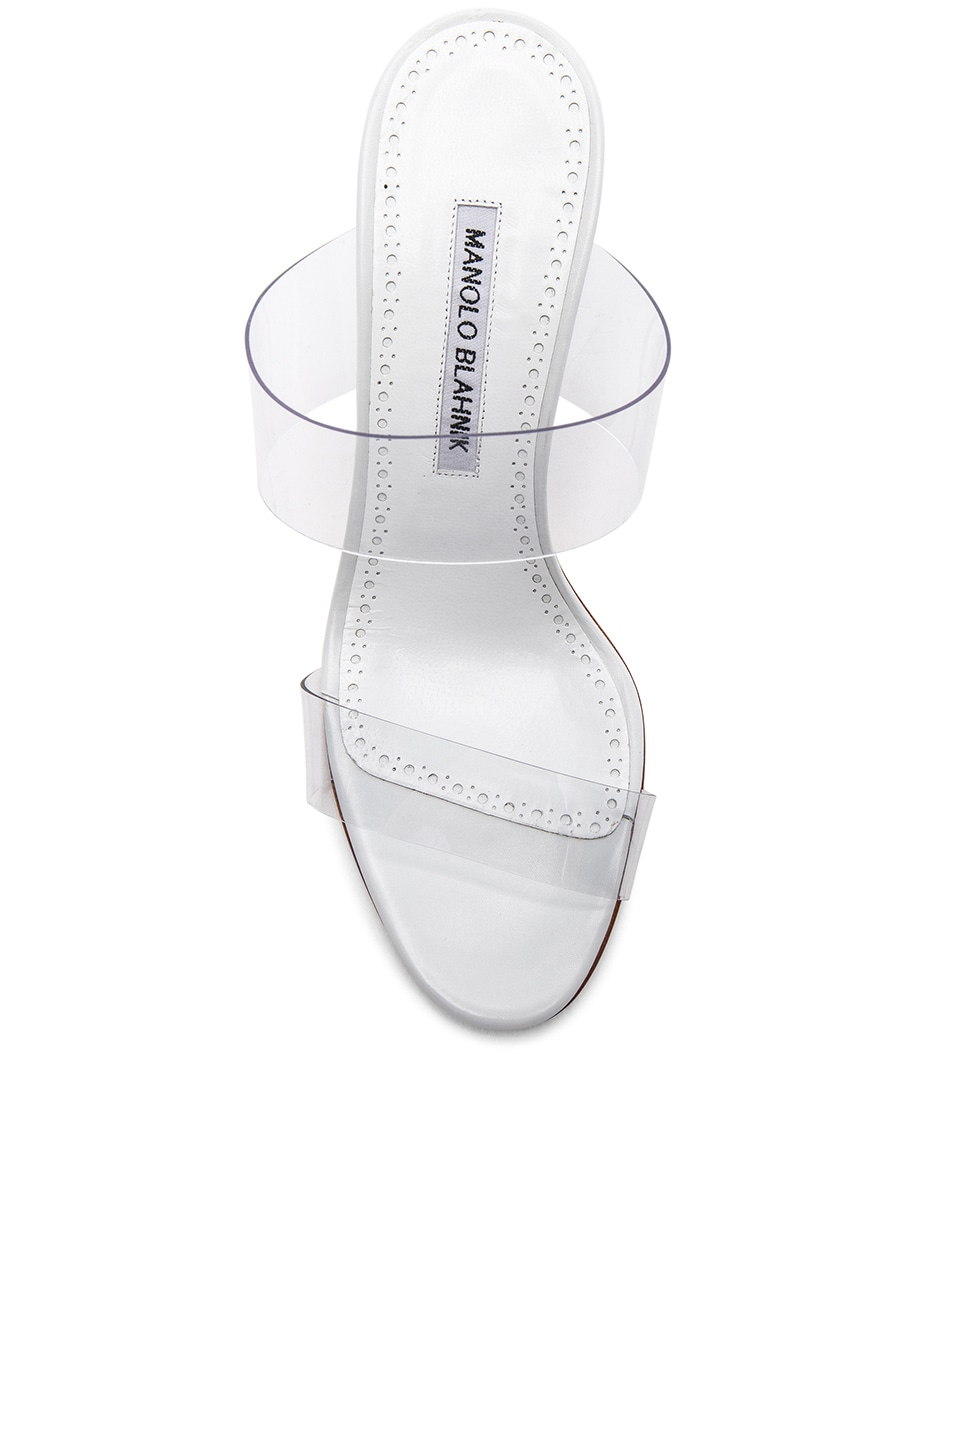 Image 4 of Manolo Blahnik PVC Scolto Sandals in White Leather